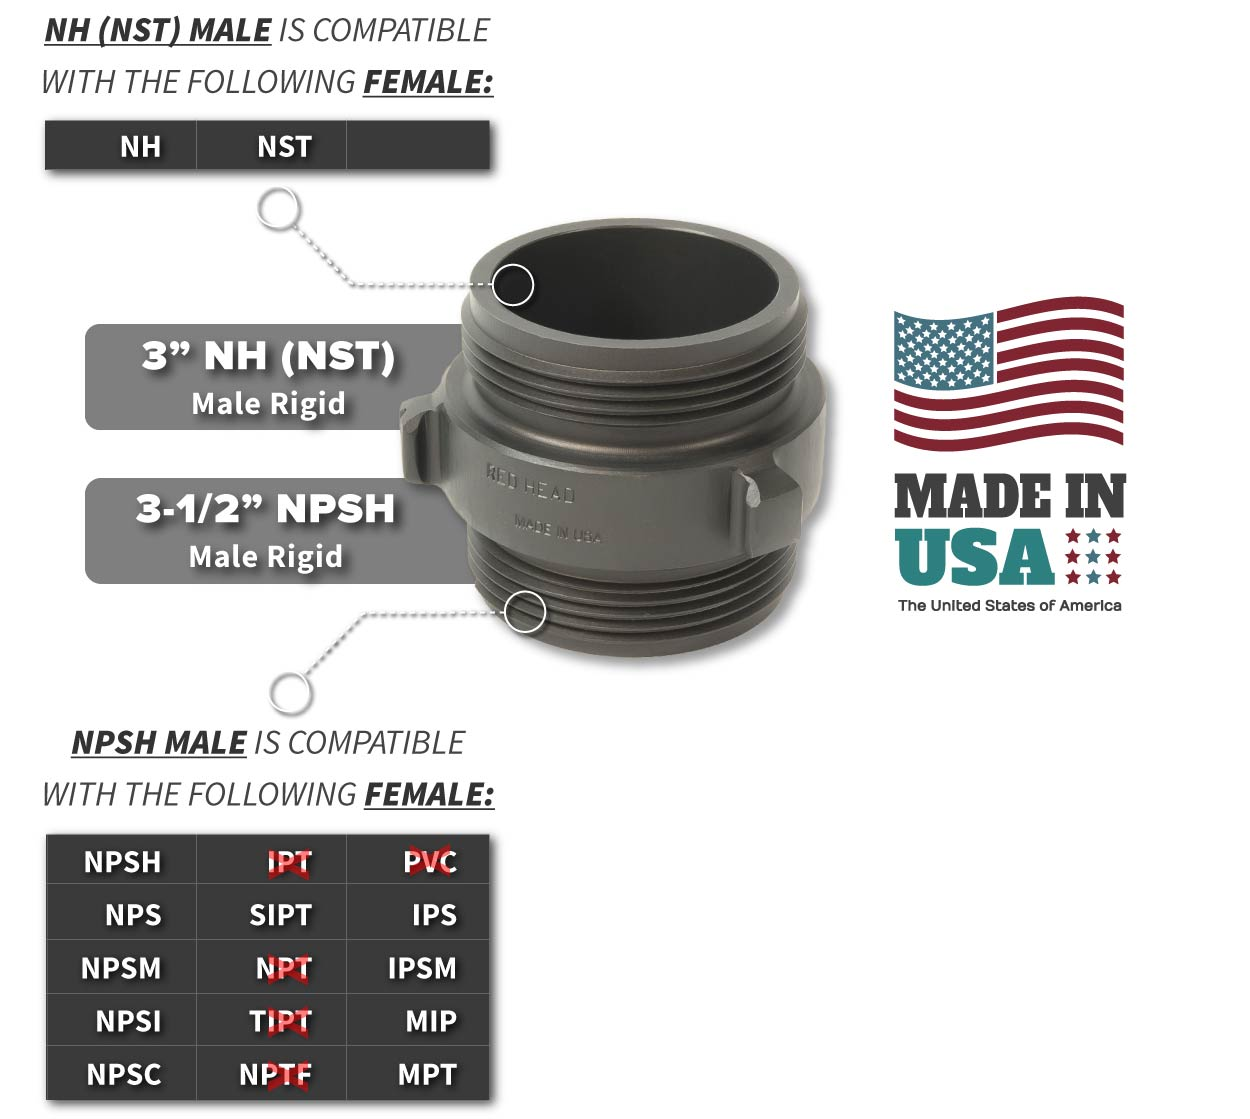 3 Inch NH-NST Male x 3.5 Inch NPSH Male Compatibility Thread Chart